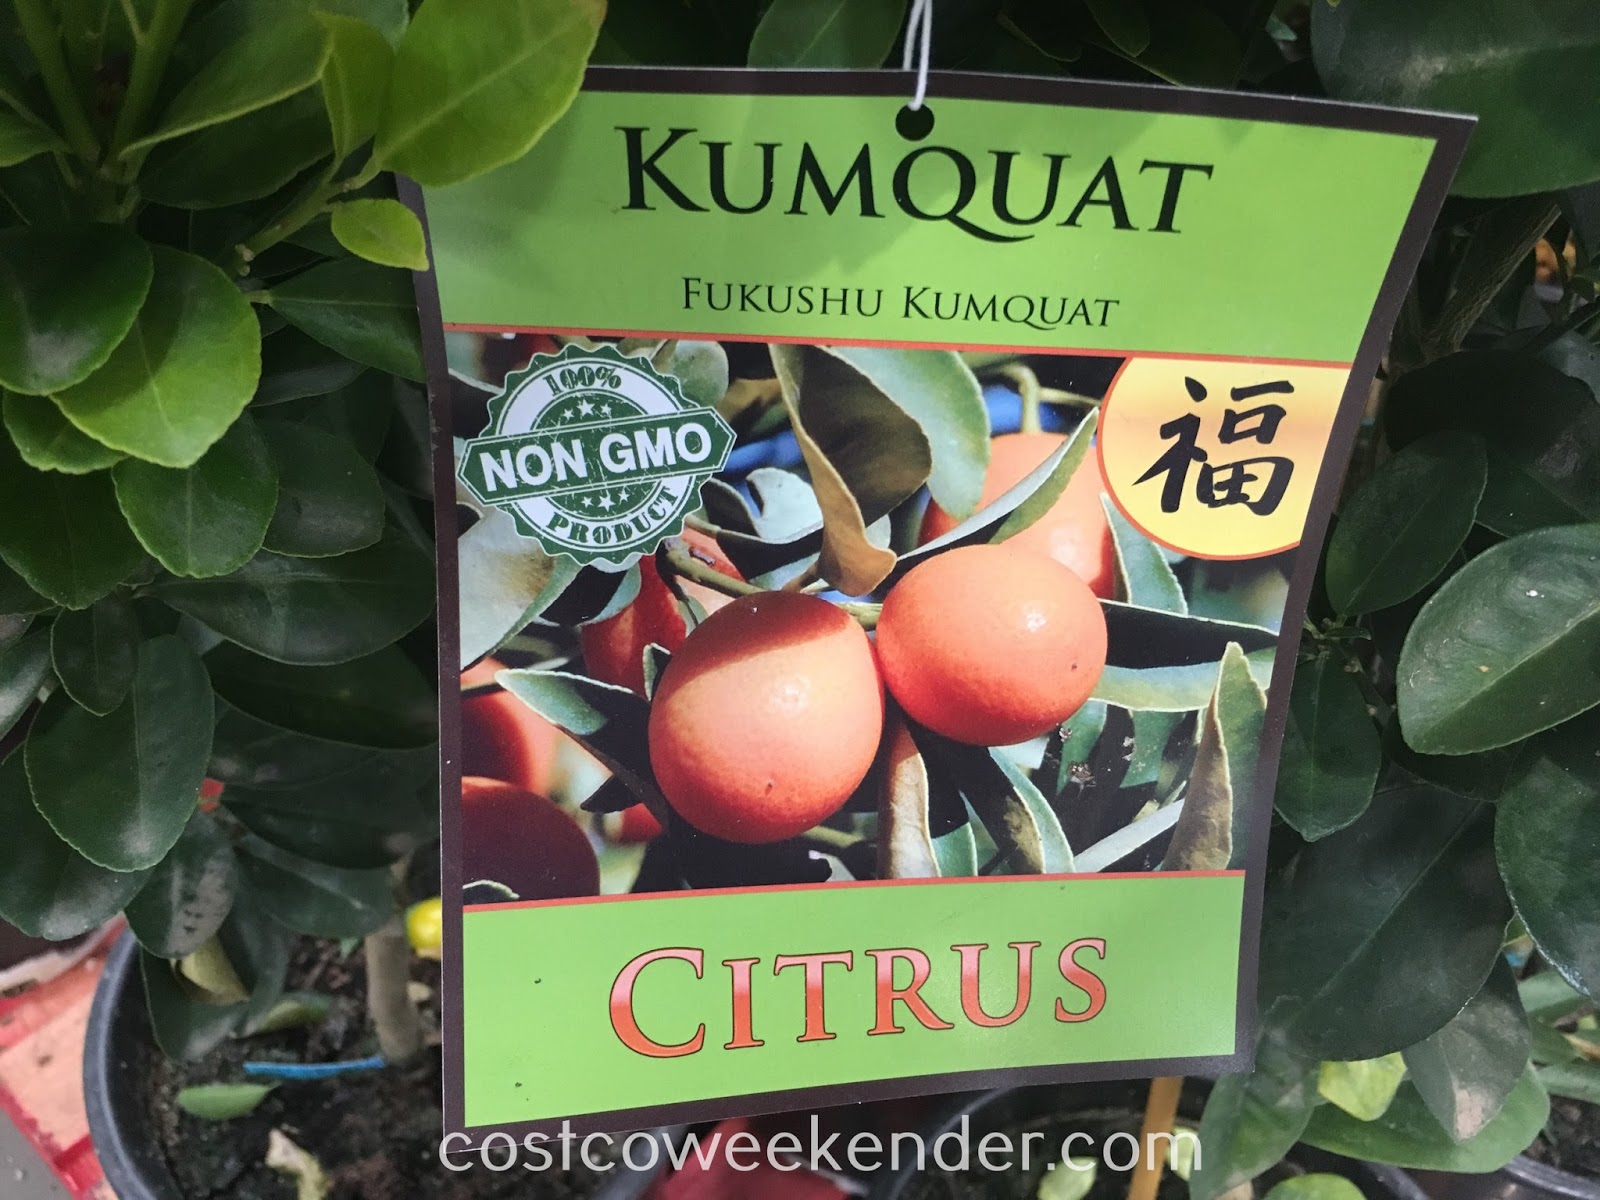 Fukushu Kumquat - great as a healthy snack